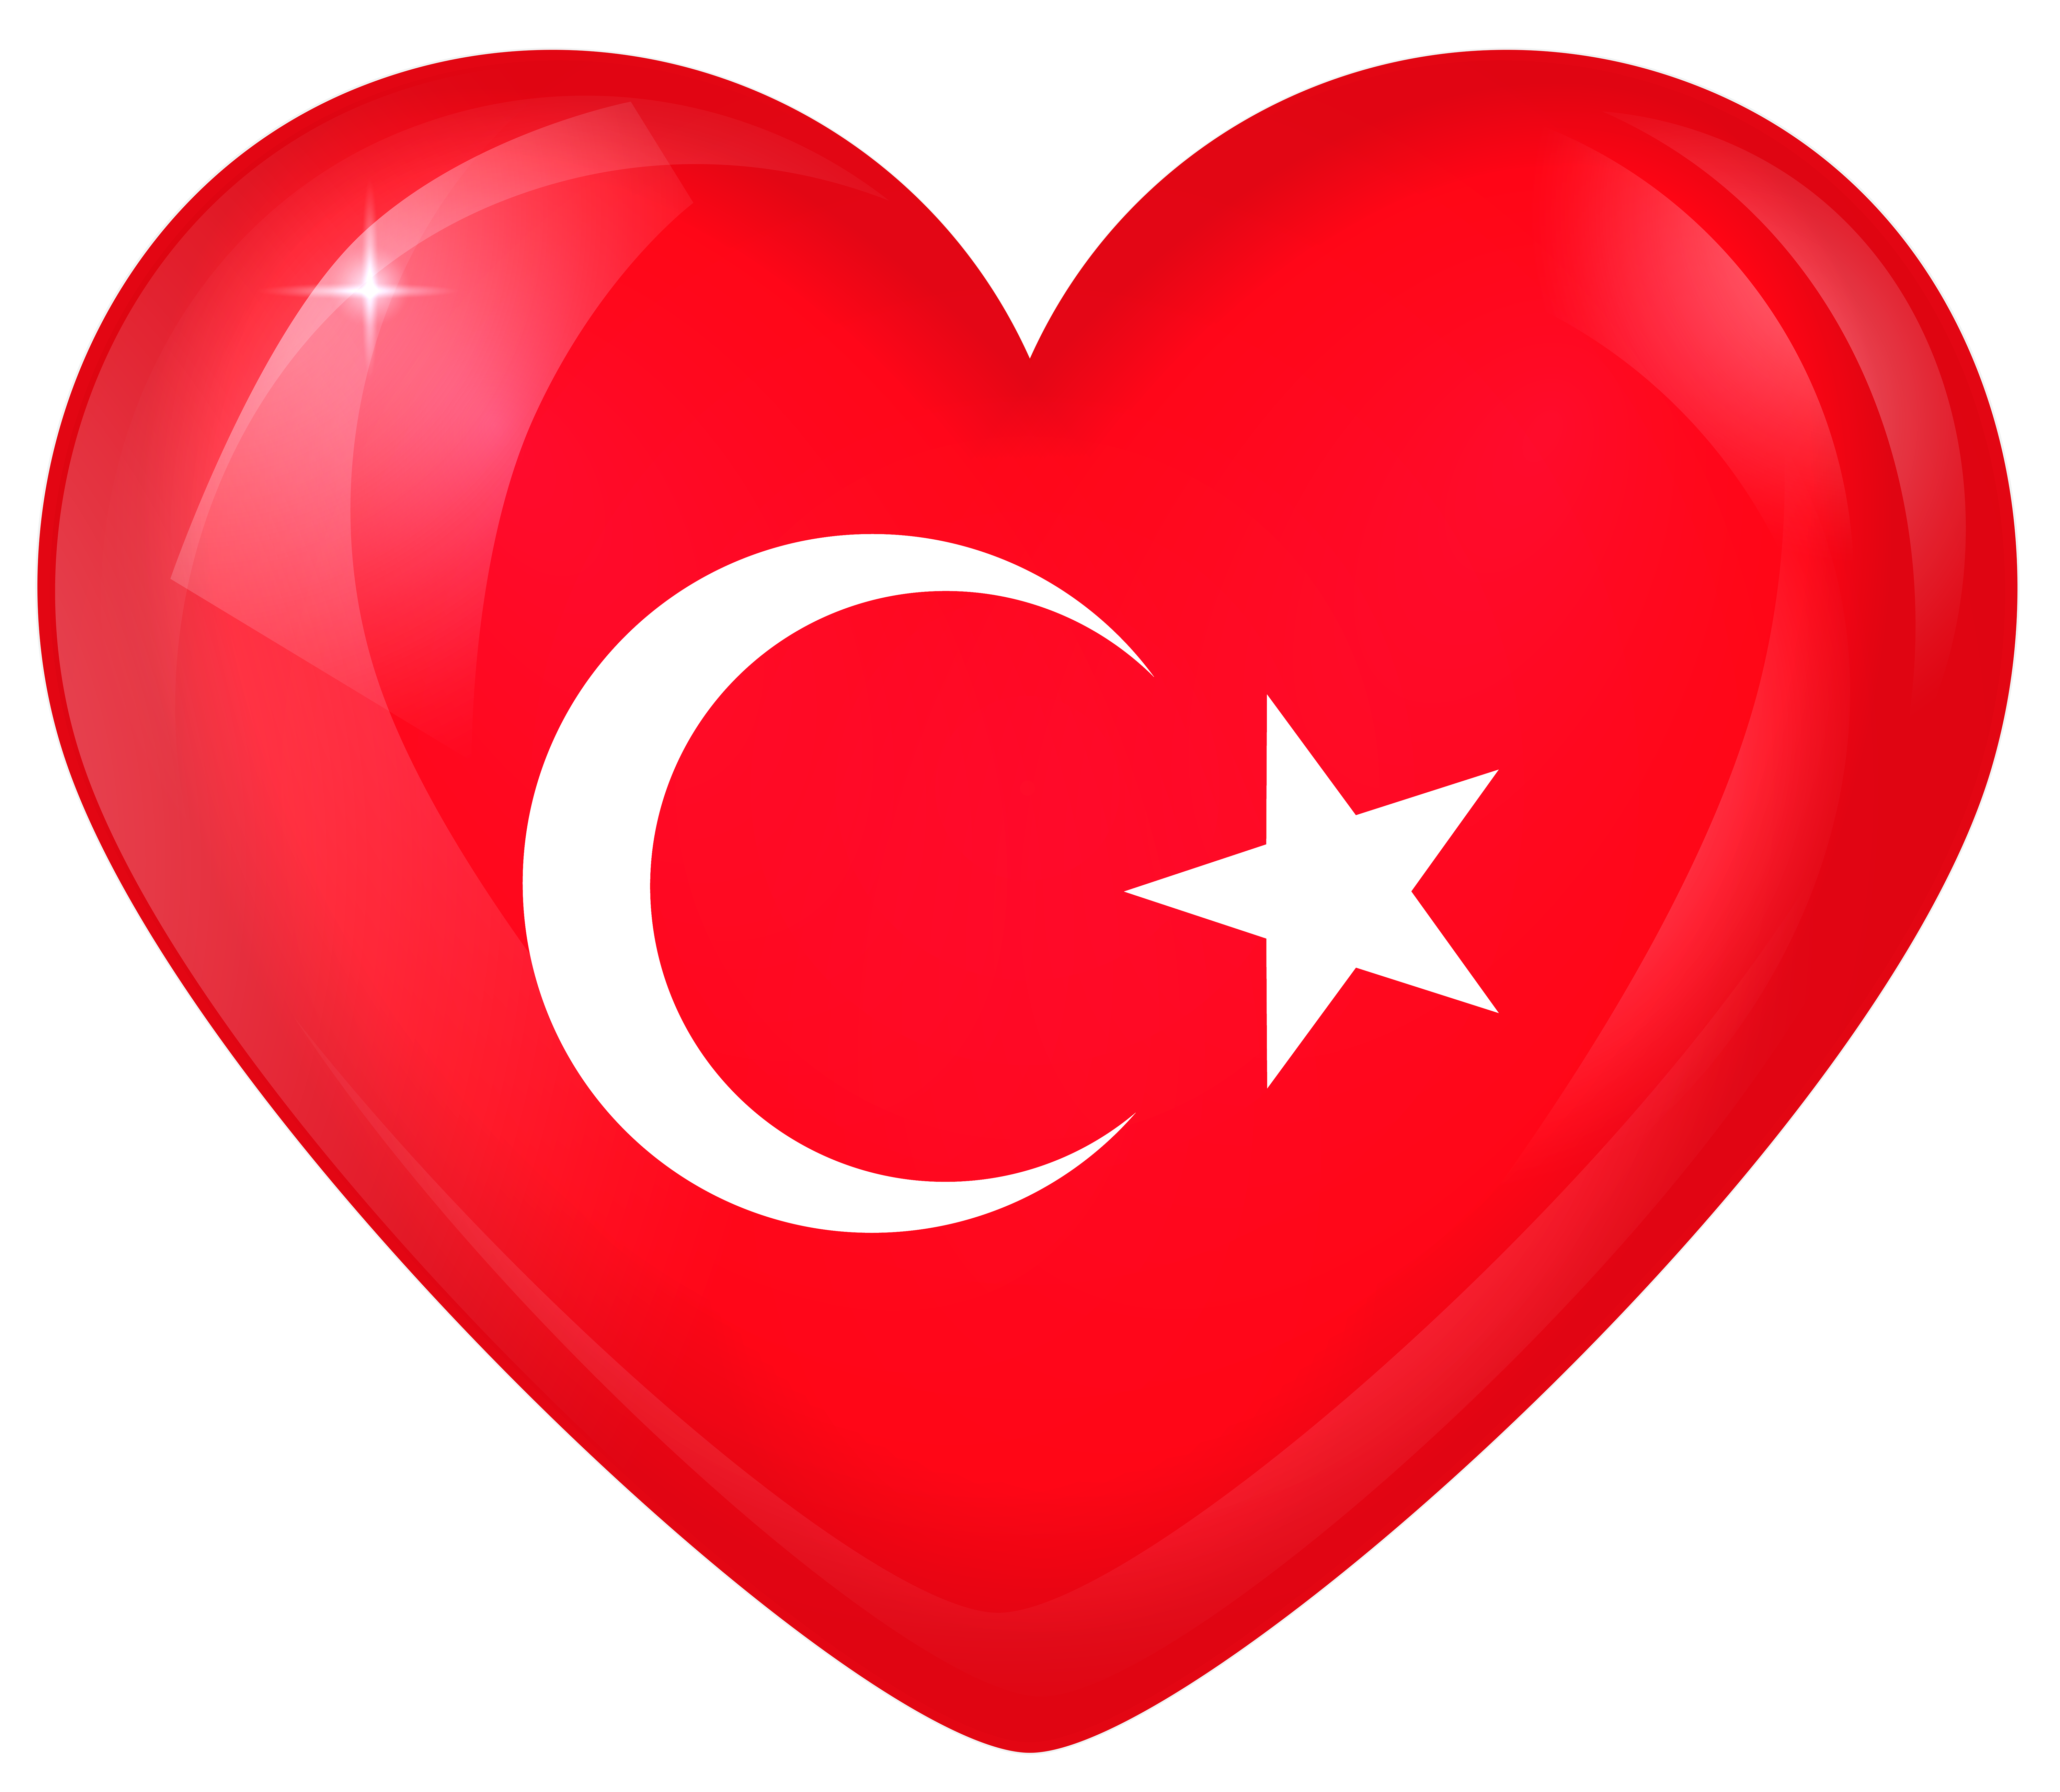 Turkey flag clipart png stock Turkey Large Heart Flag | Gallery Yopriceville - High-Quality ... png stock